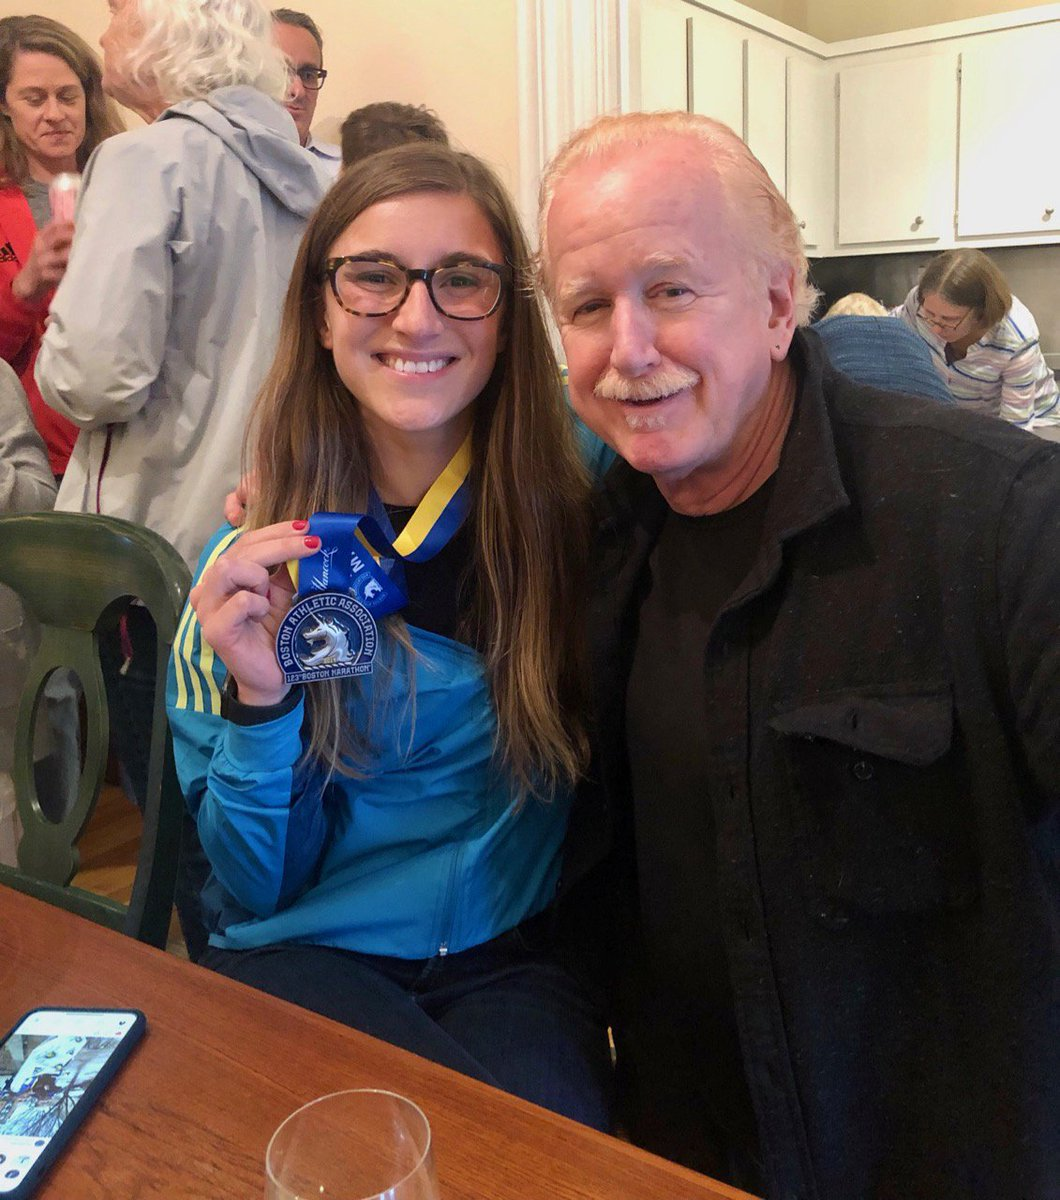 My daughter, Aurora ran the 123rd Boston Marathon today and finished in 3:52:34! An unbelievable accomplishment! <br>http://pic.twitter.com/Na8D61A9pm